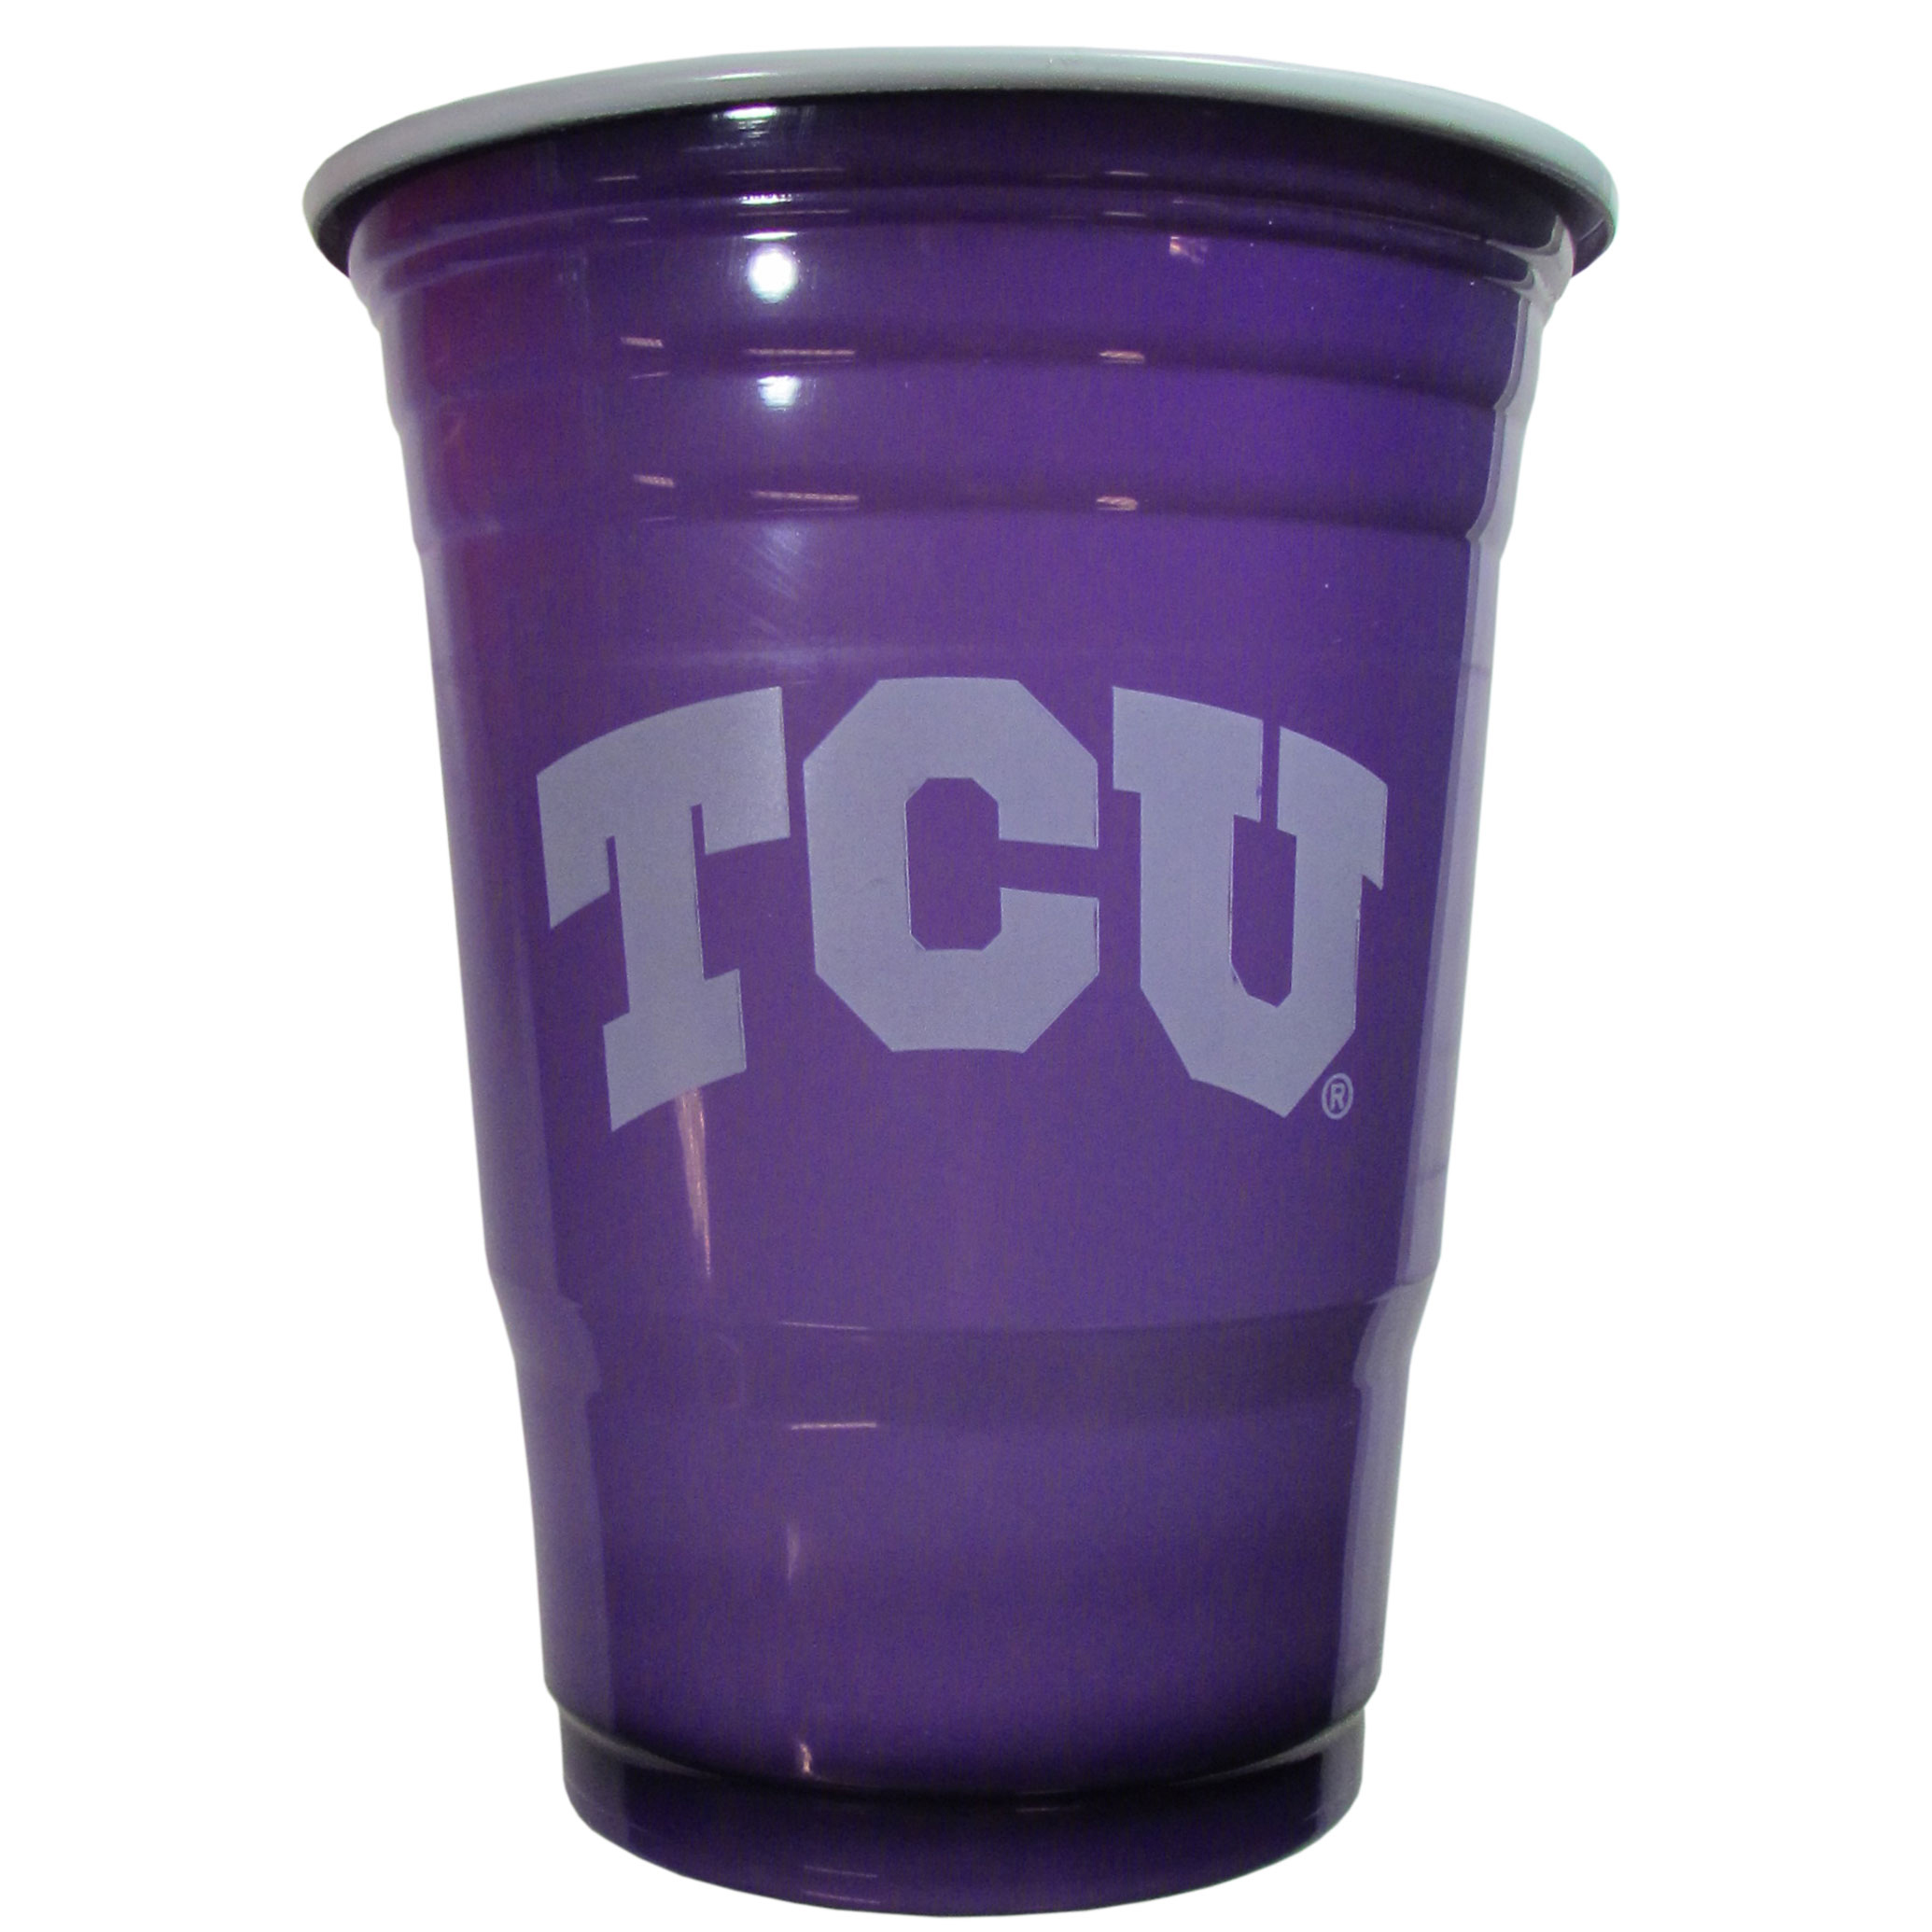 TCU Horned Frogs Plastic Game Day Cups 2 sleeves of 18 (36 Cups) - Our 18 ounce game day cups are what every tailgating or backyard events needs! The cups feature a big TCU Horned Frogs logo so you can show off your team pride. The popular 18 ounce size is perfect for drinks or ping pong balls! 2 sleeves of 18 cups, 36 cups in total.